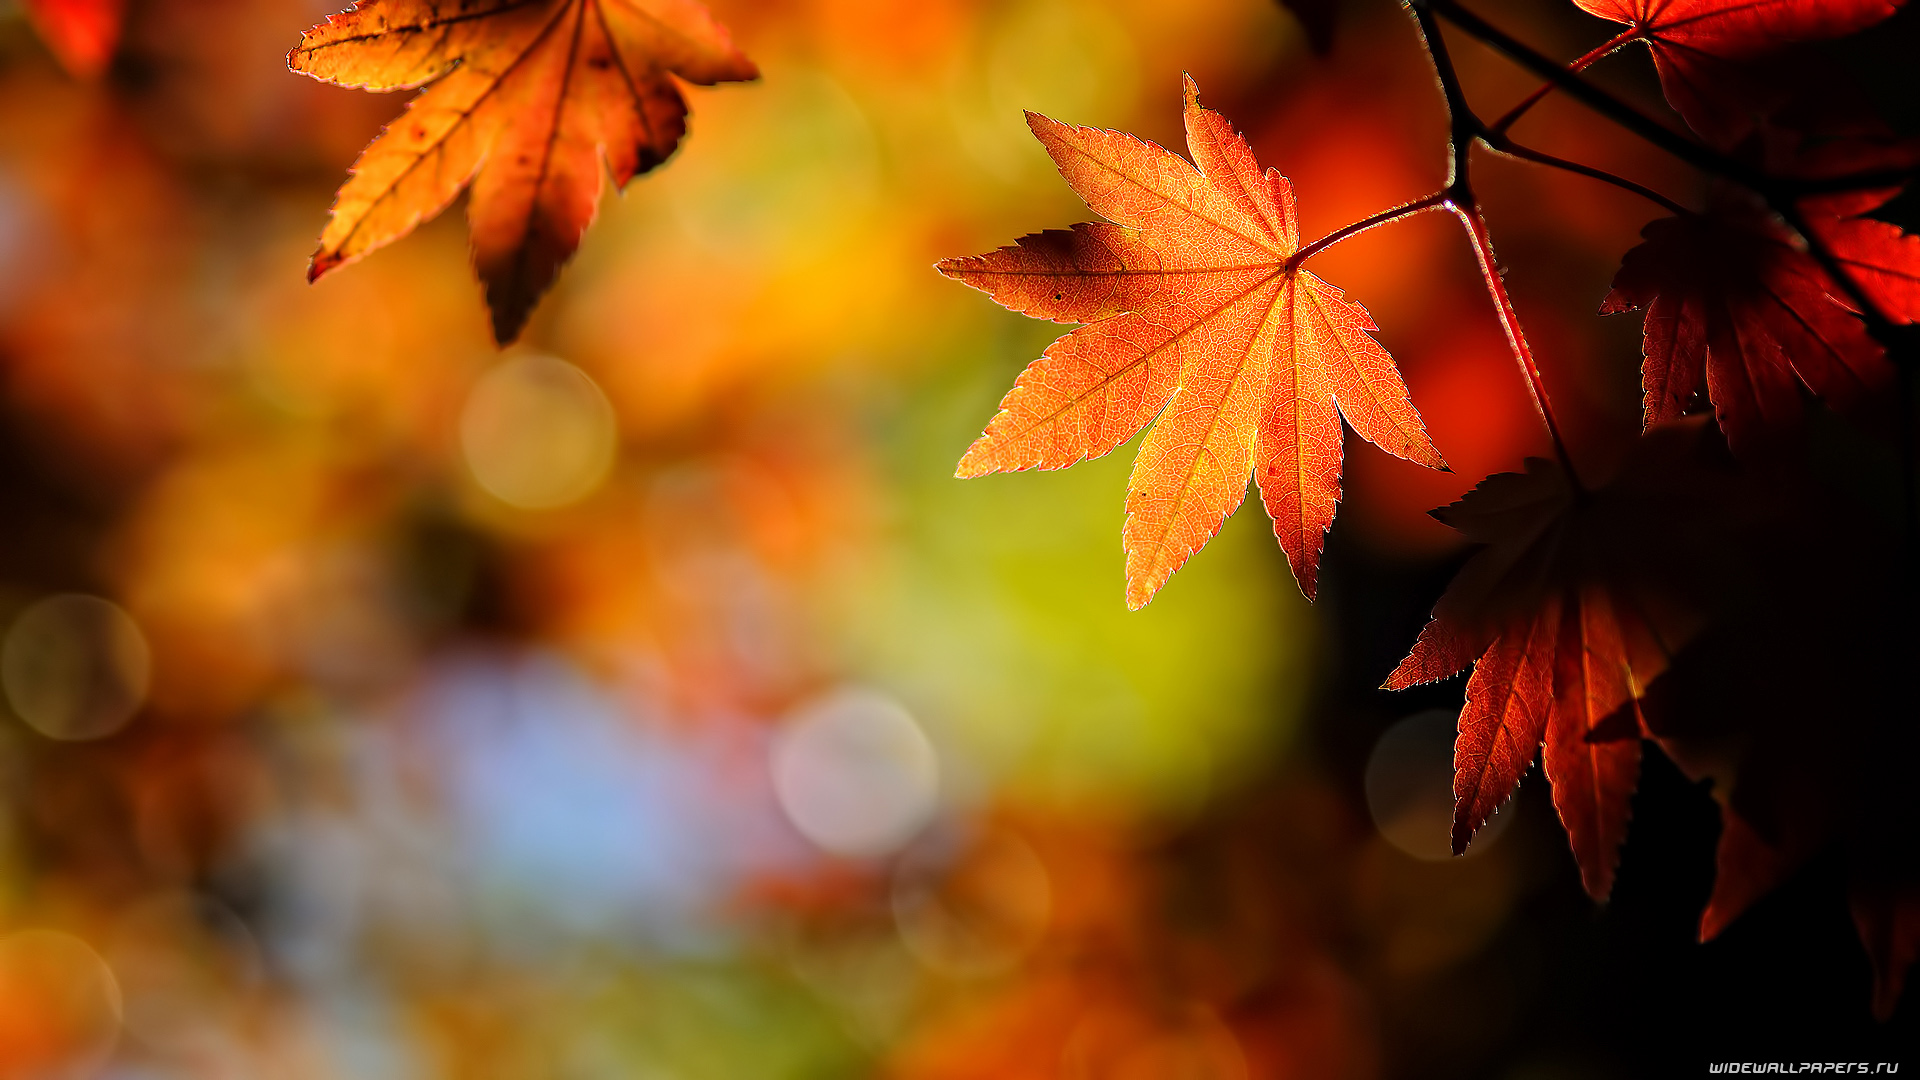 Abstract Awesome Leaves Autumn Wallpaper Autumn Wallpaper